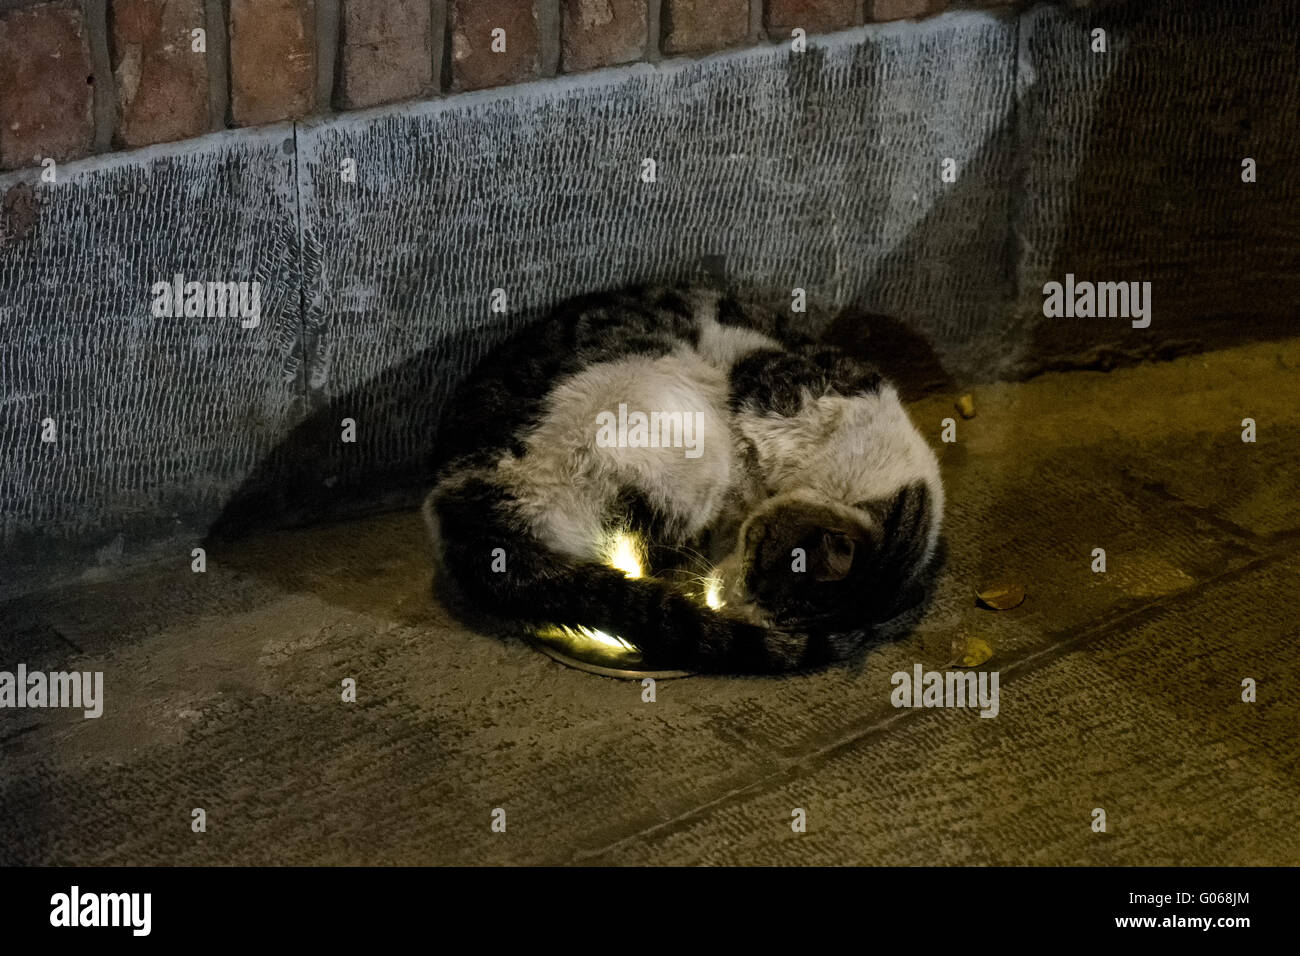 Stray cat lying on a recessed light for warmth in Tehran, Iran. - Stock Image